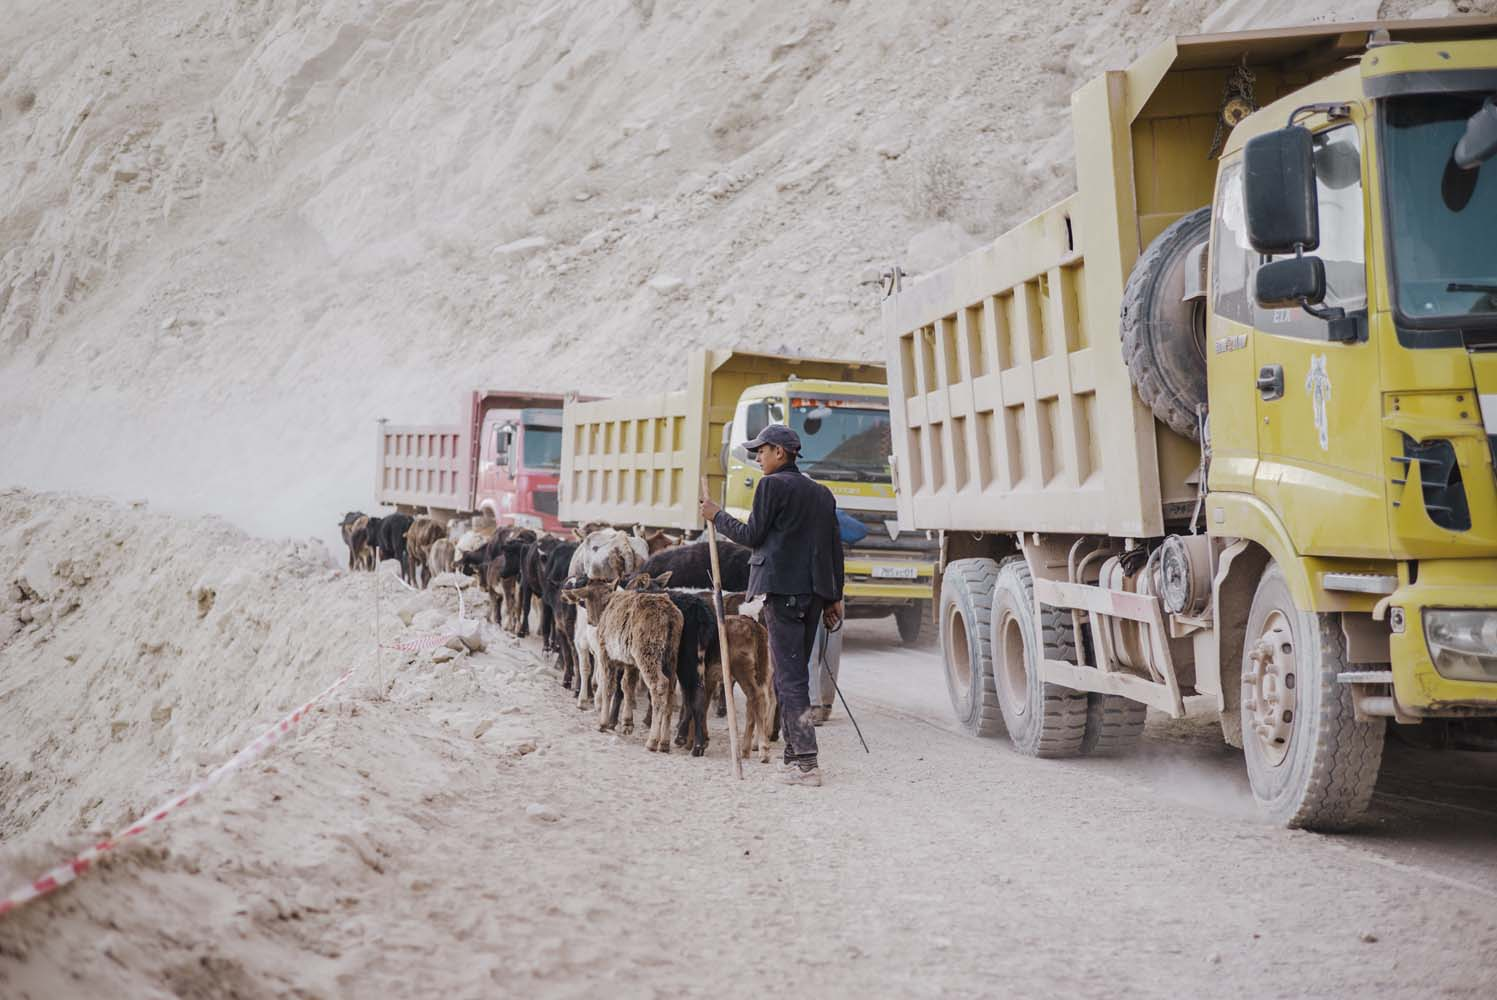 Chinese money is being used to build the New Silk Road